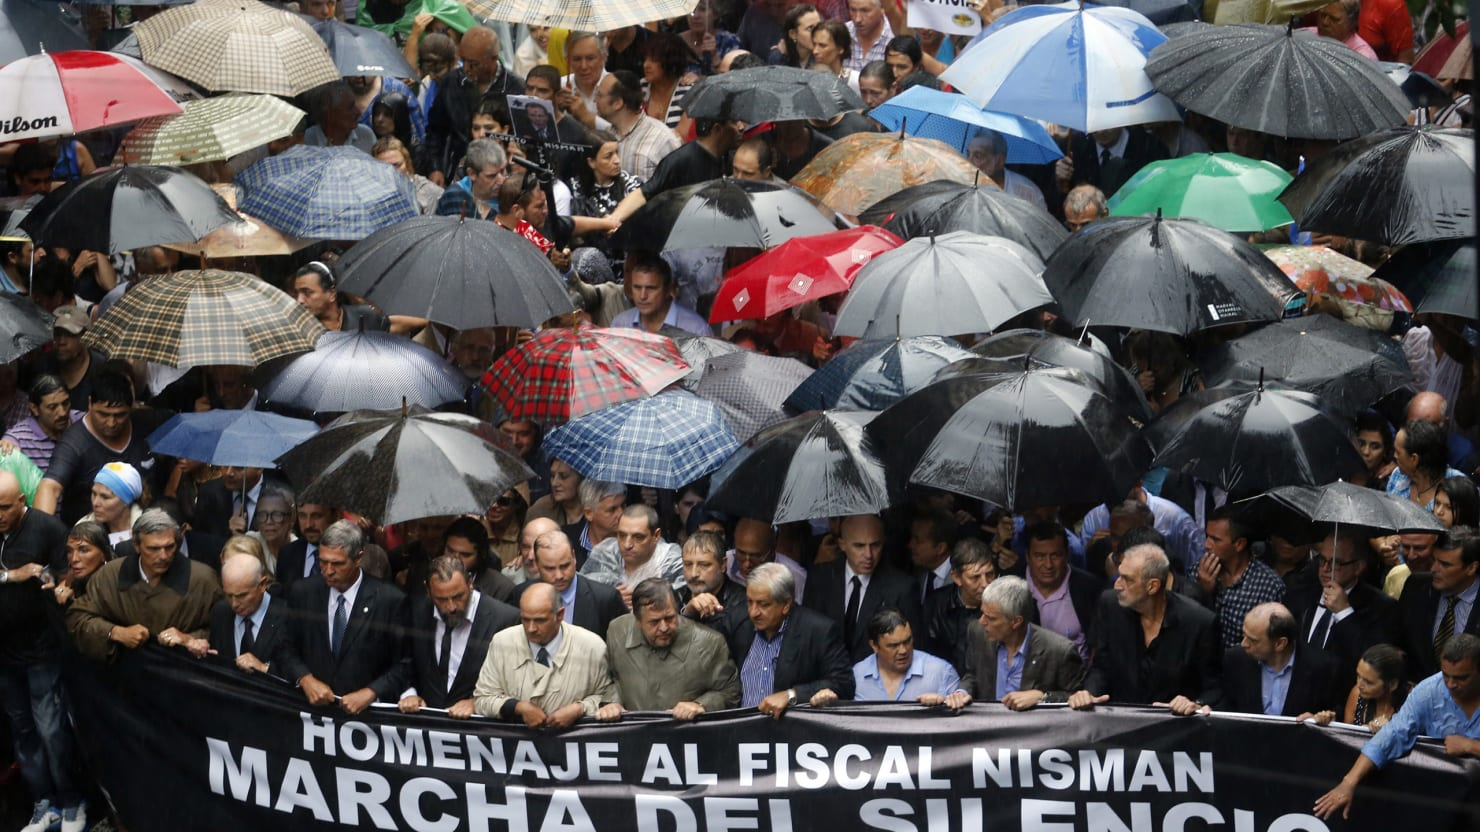 A Huge March in Argentina Demands Justice for the Nisman Killing